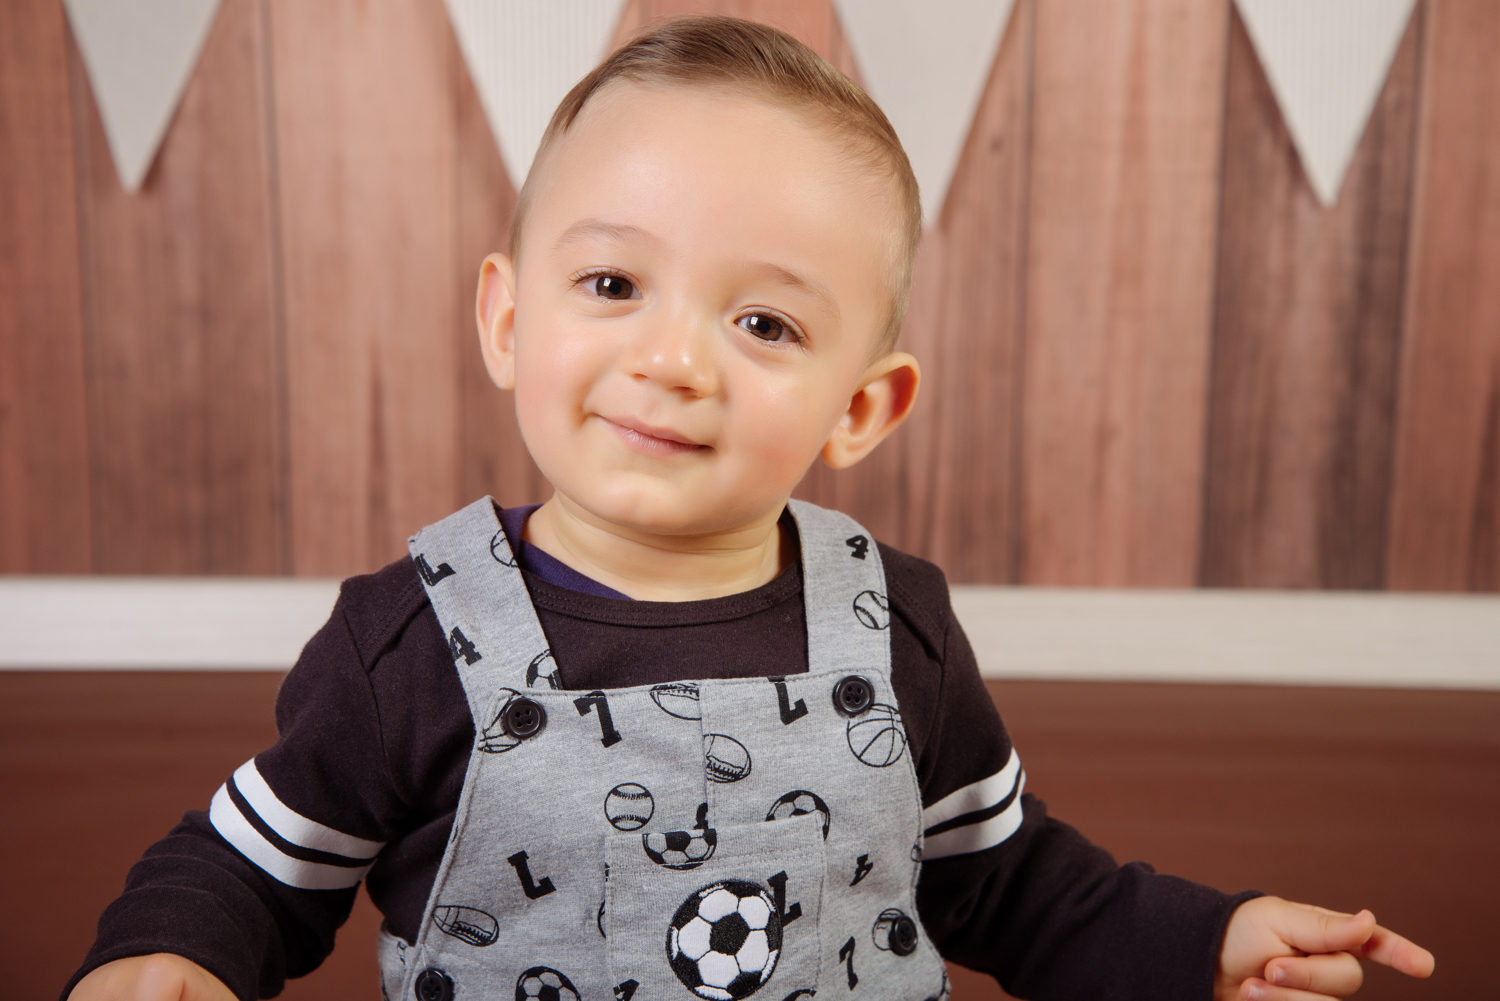 Gerson 1 year Session